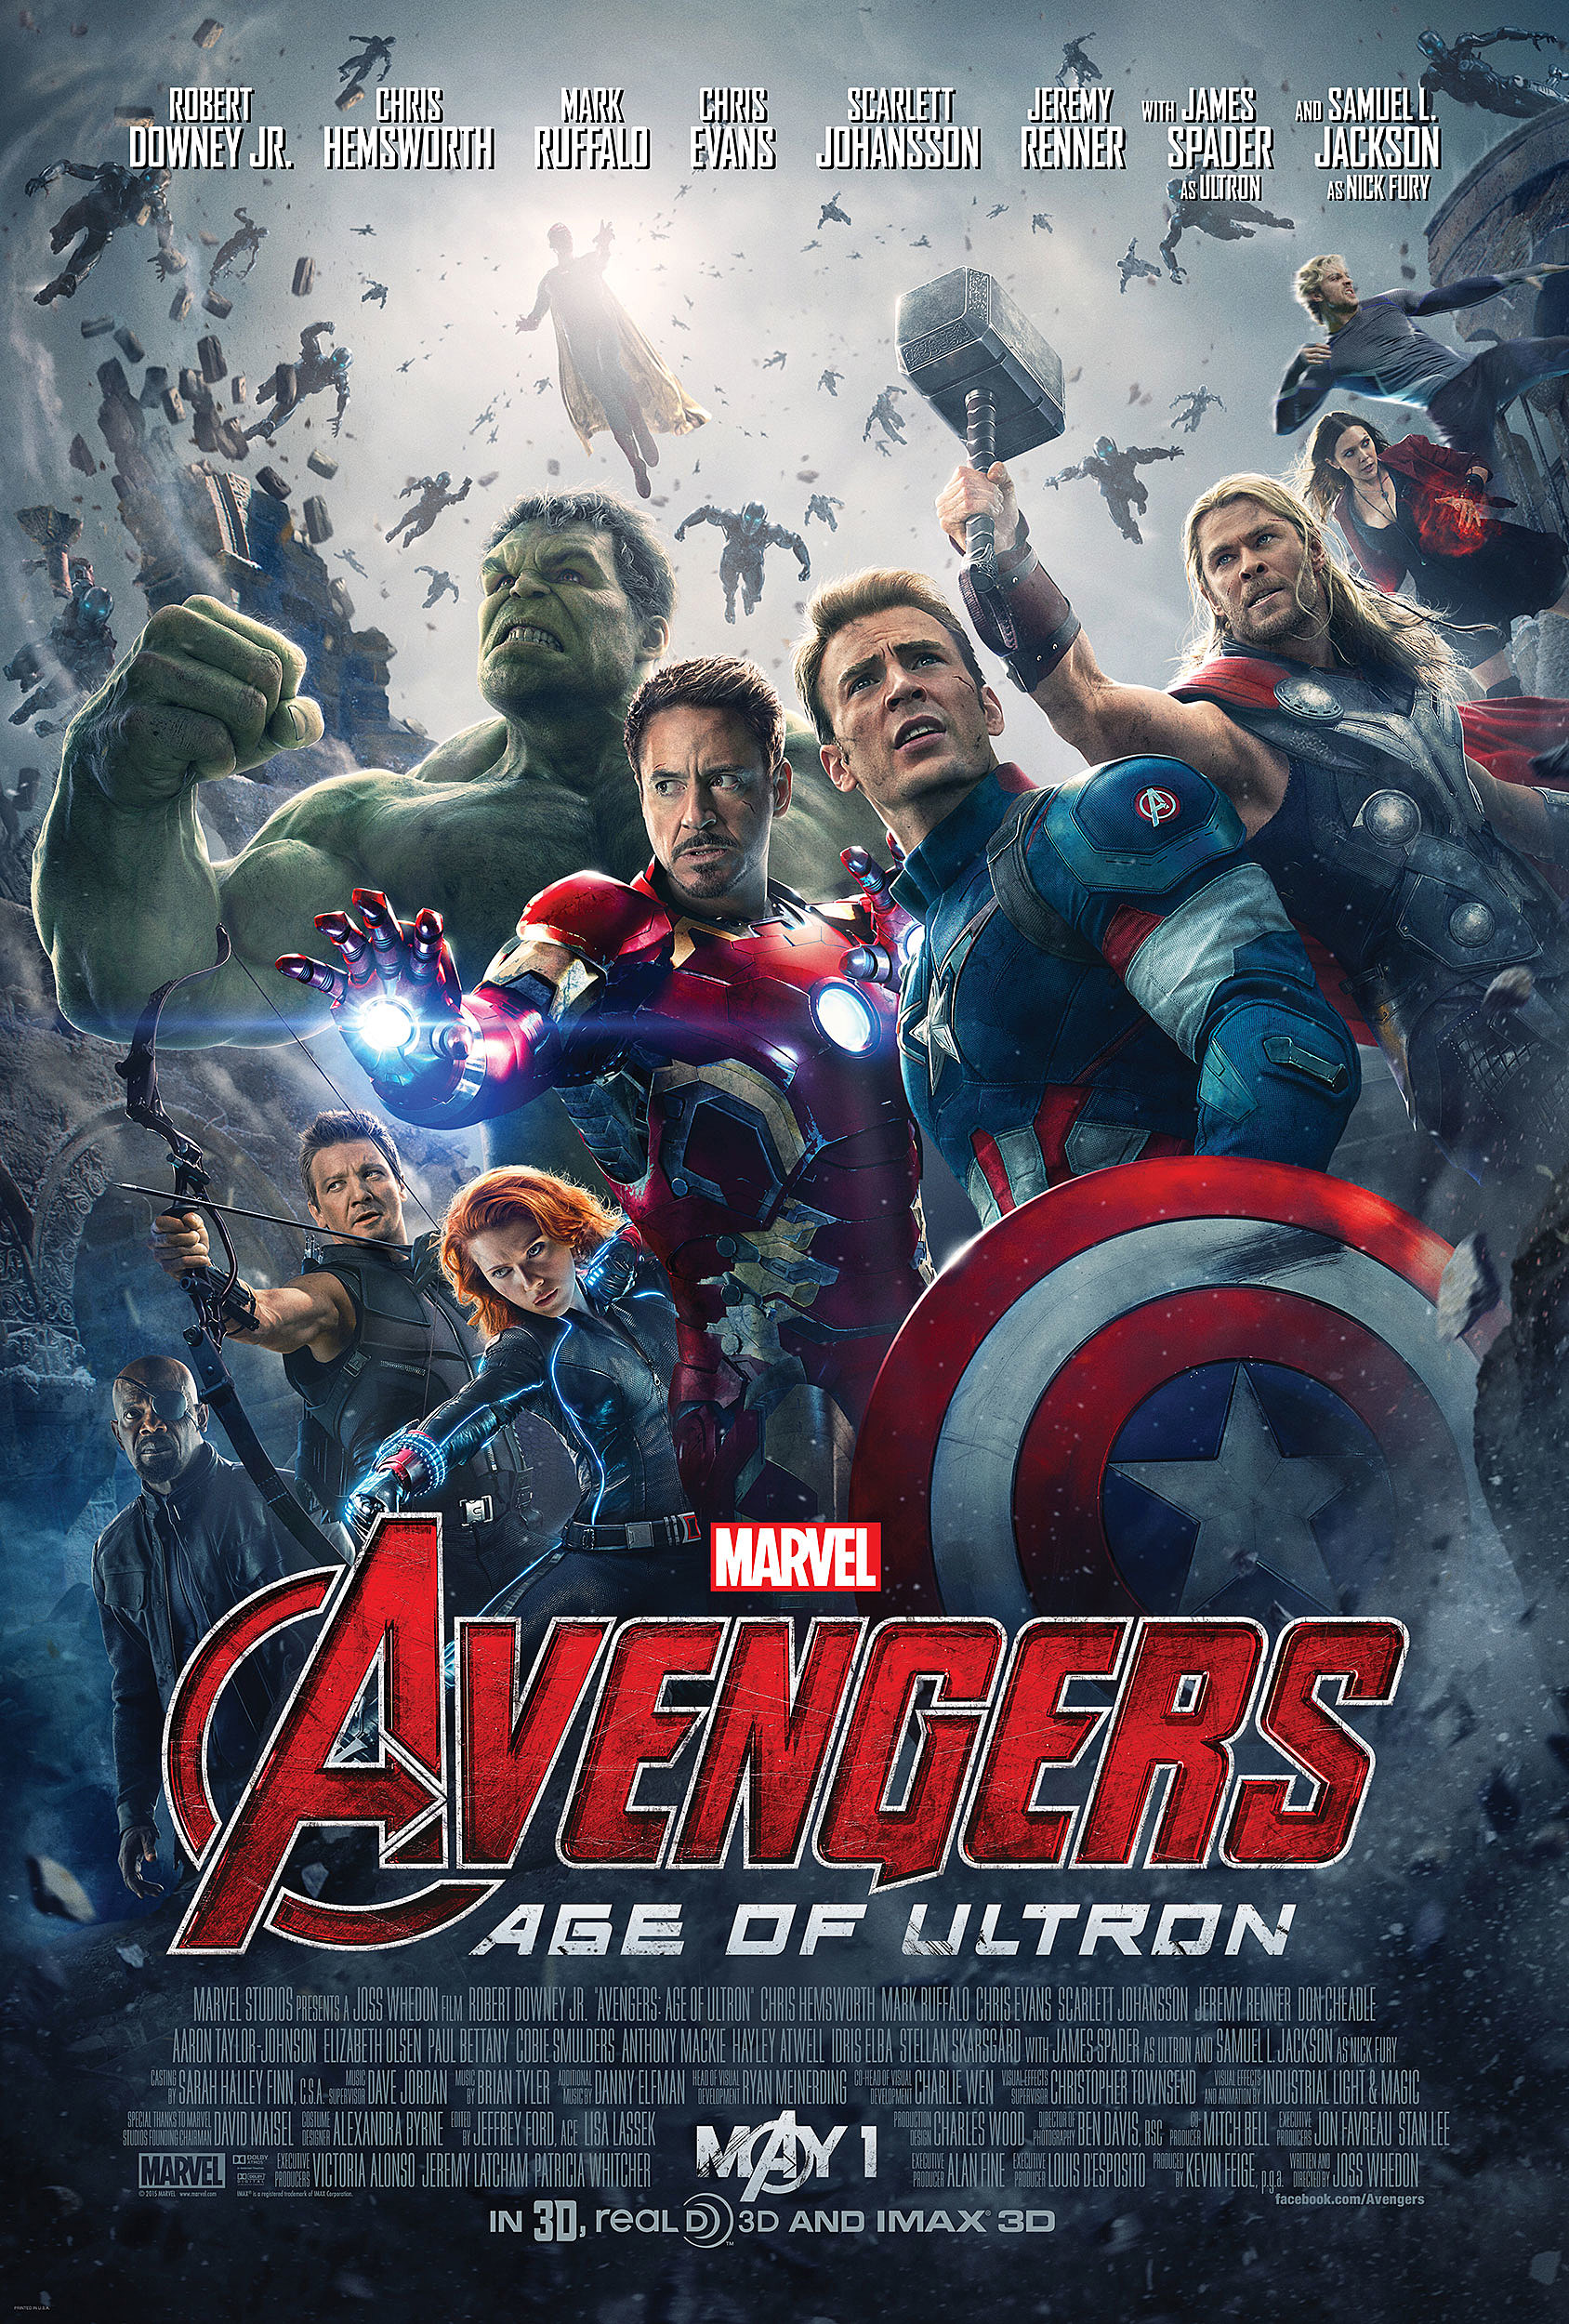 Dissecting Those New 'Avengers 2' Posters